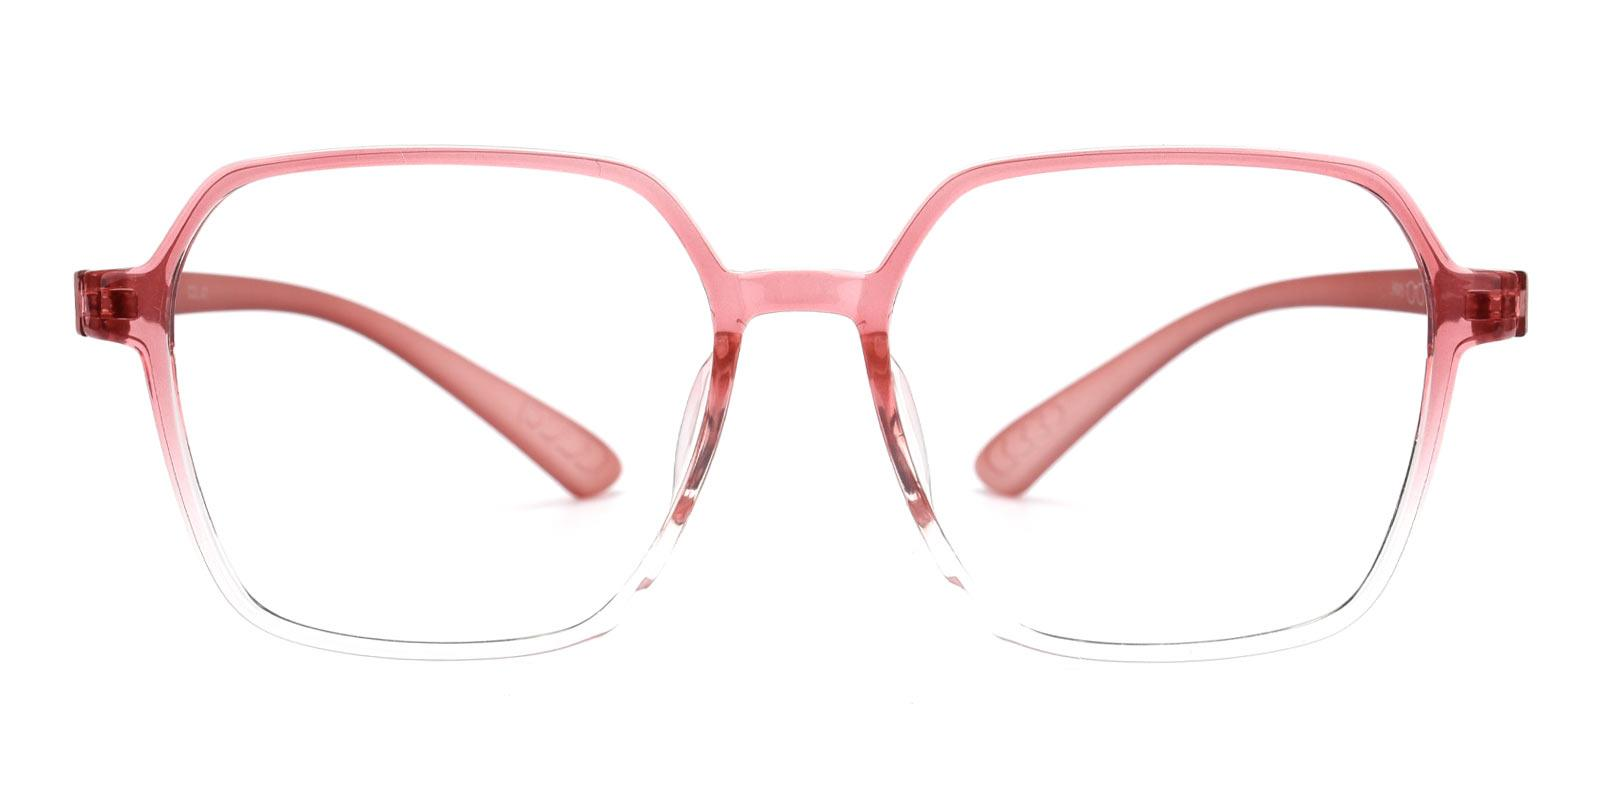 Macaron-Red-Square-TR-Eyeglasses-additional2